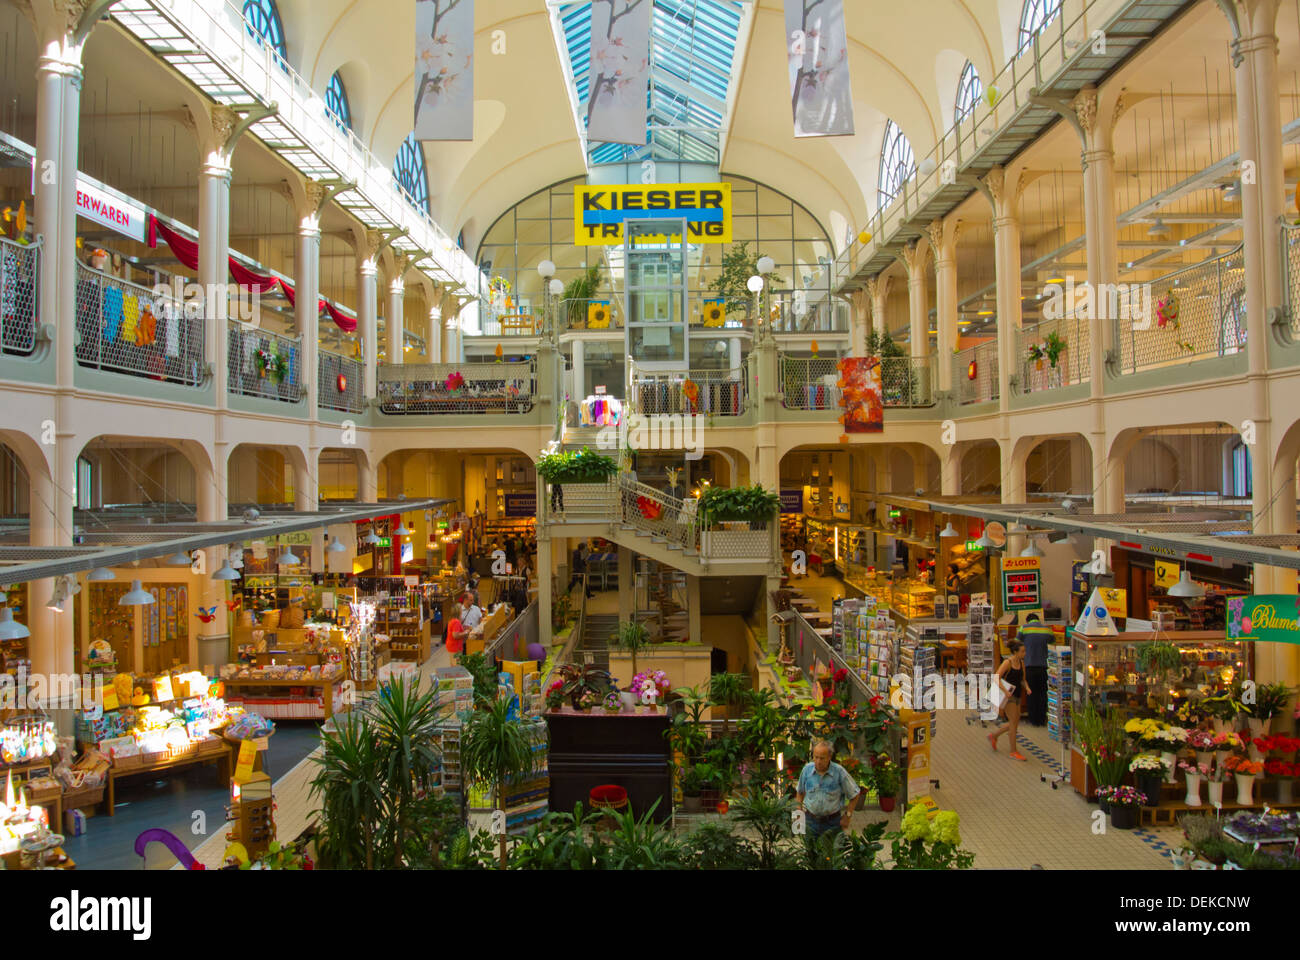 Markthalle the market hall interior Neustadt the new town Dresden city Saxony state eastern Germany central Europe - Stock Image